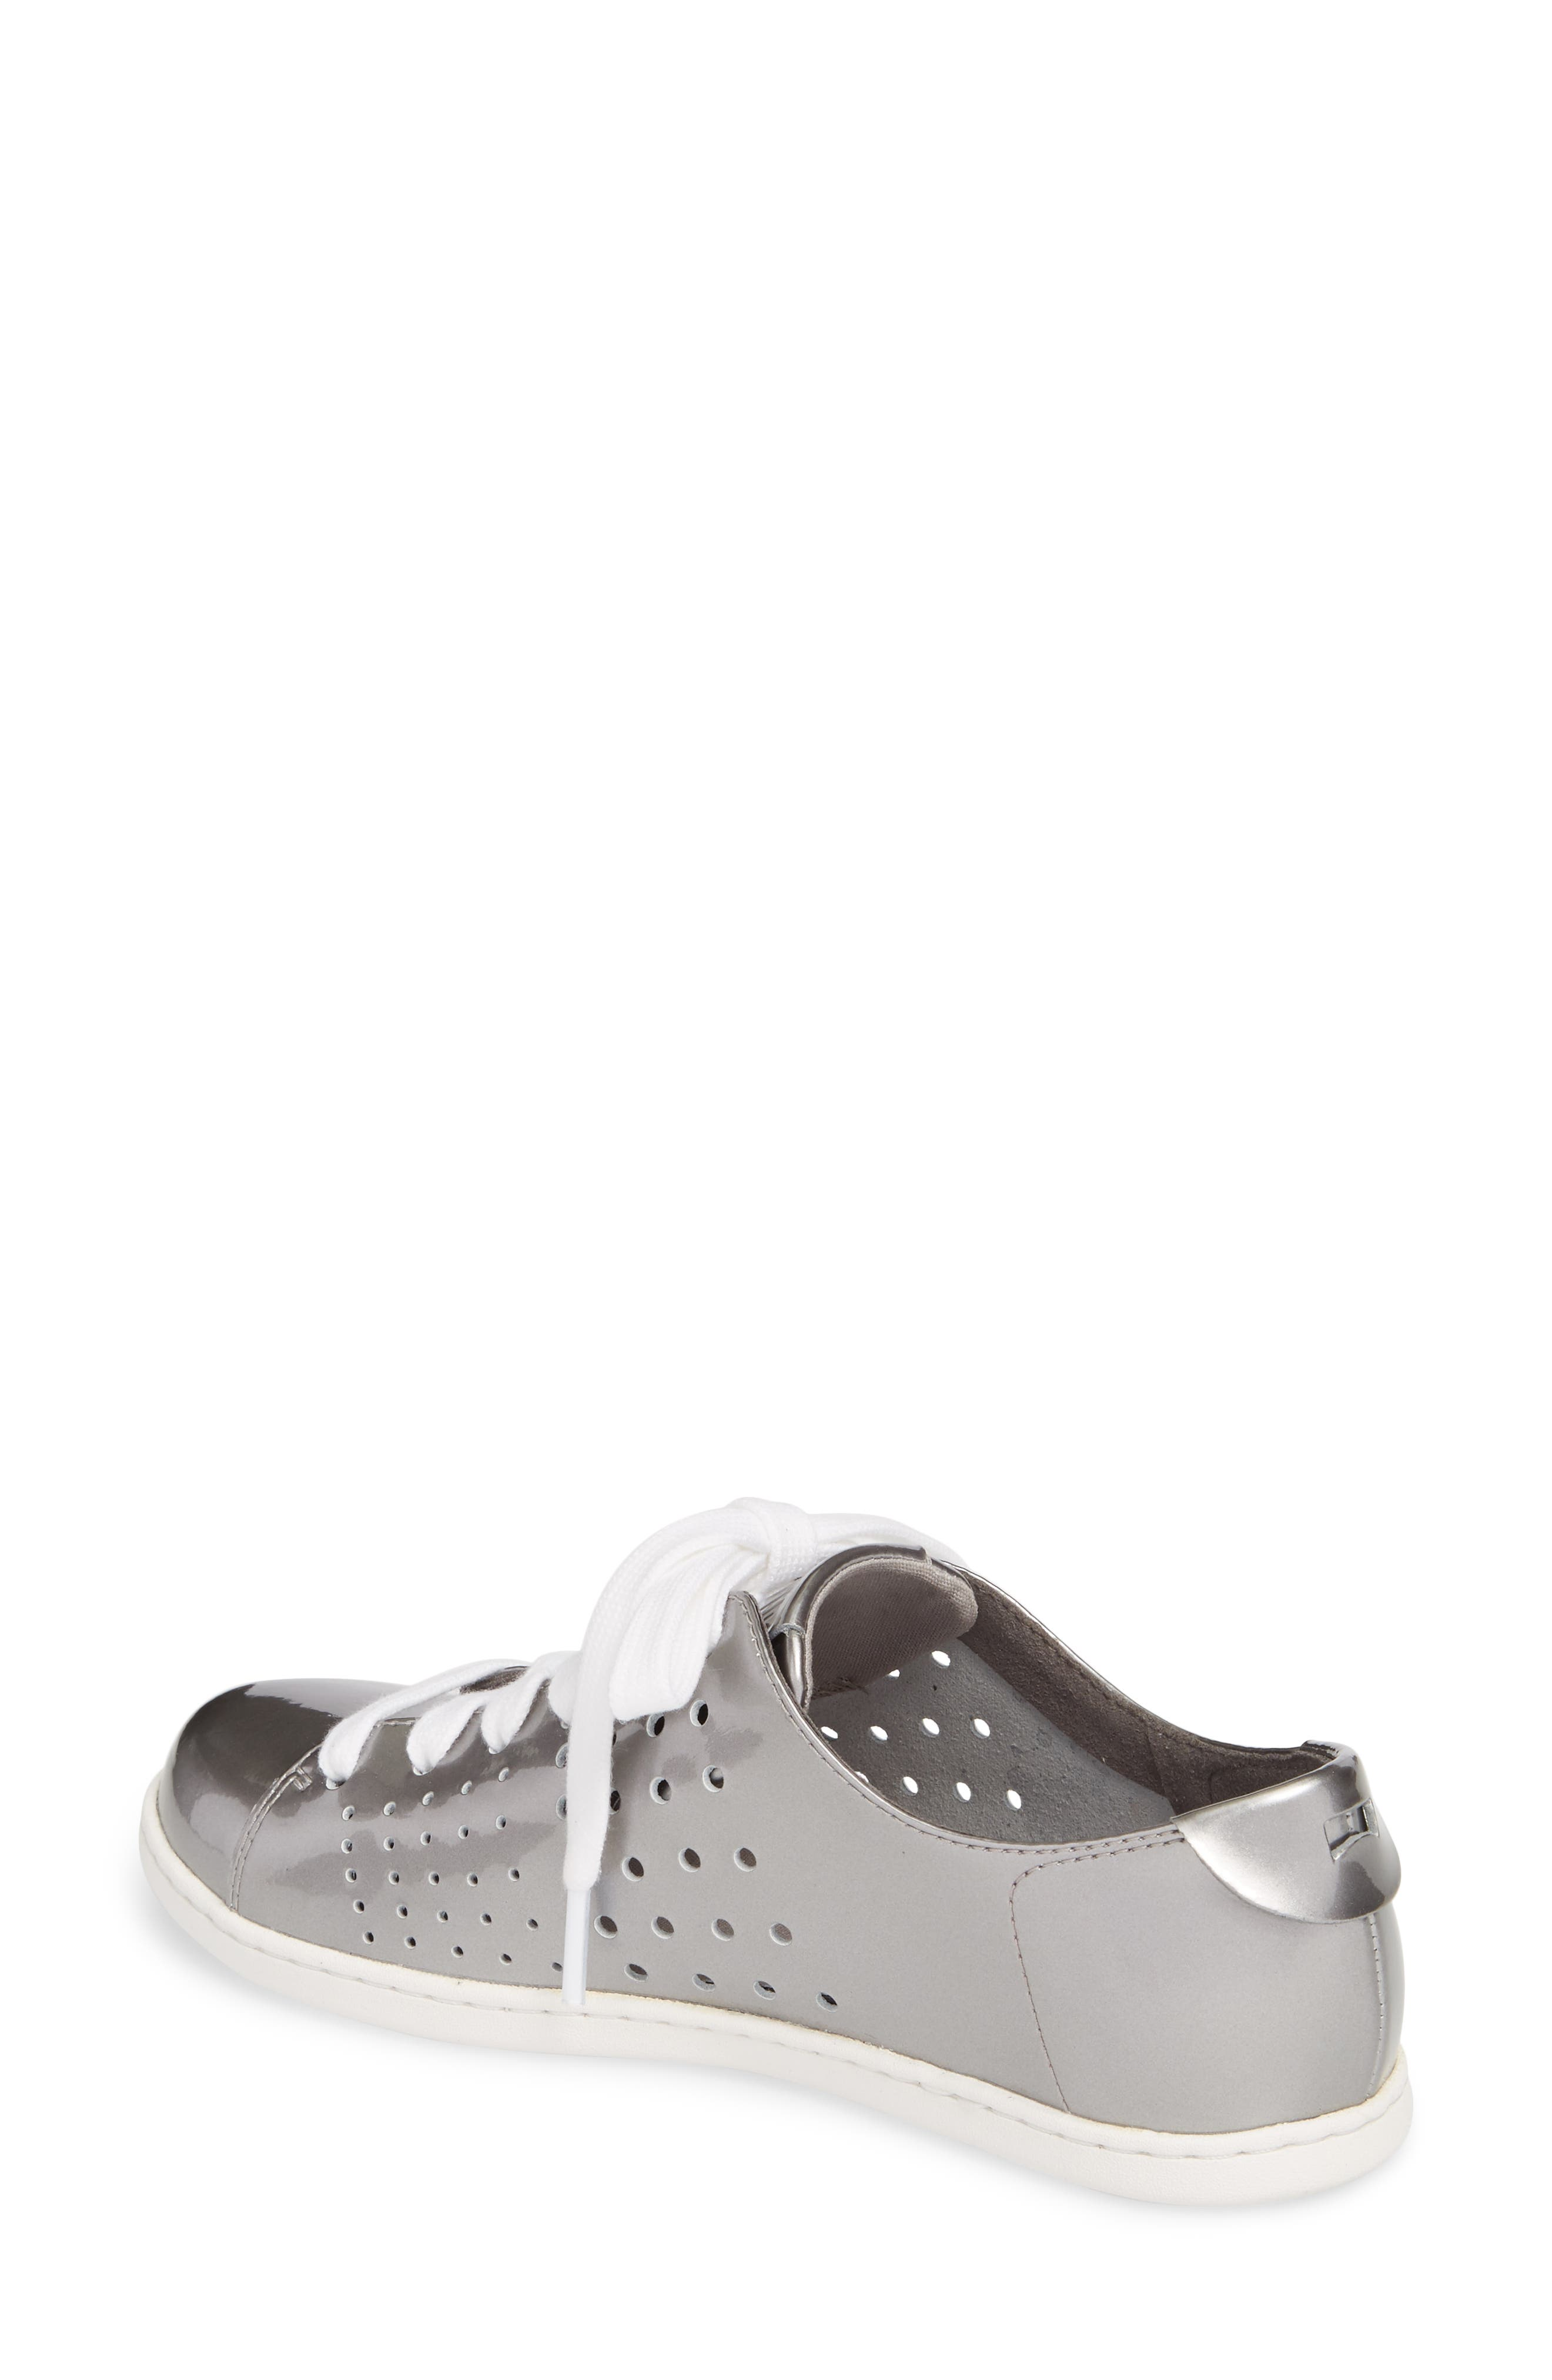 Twins Perforated Low Top Sneaker,                             Alternate thumbnail 2, color,                             Medium Gray Leather